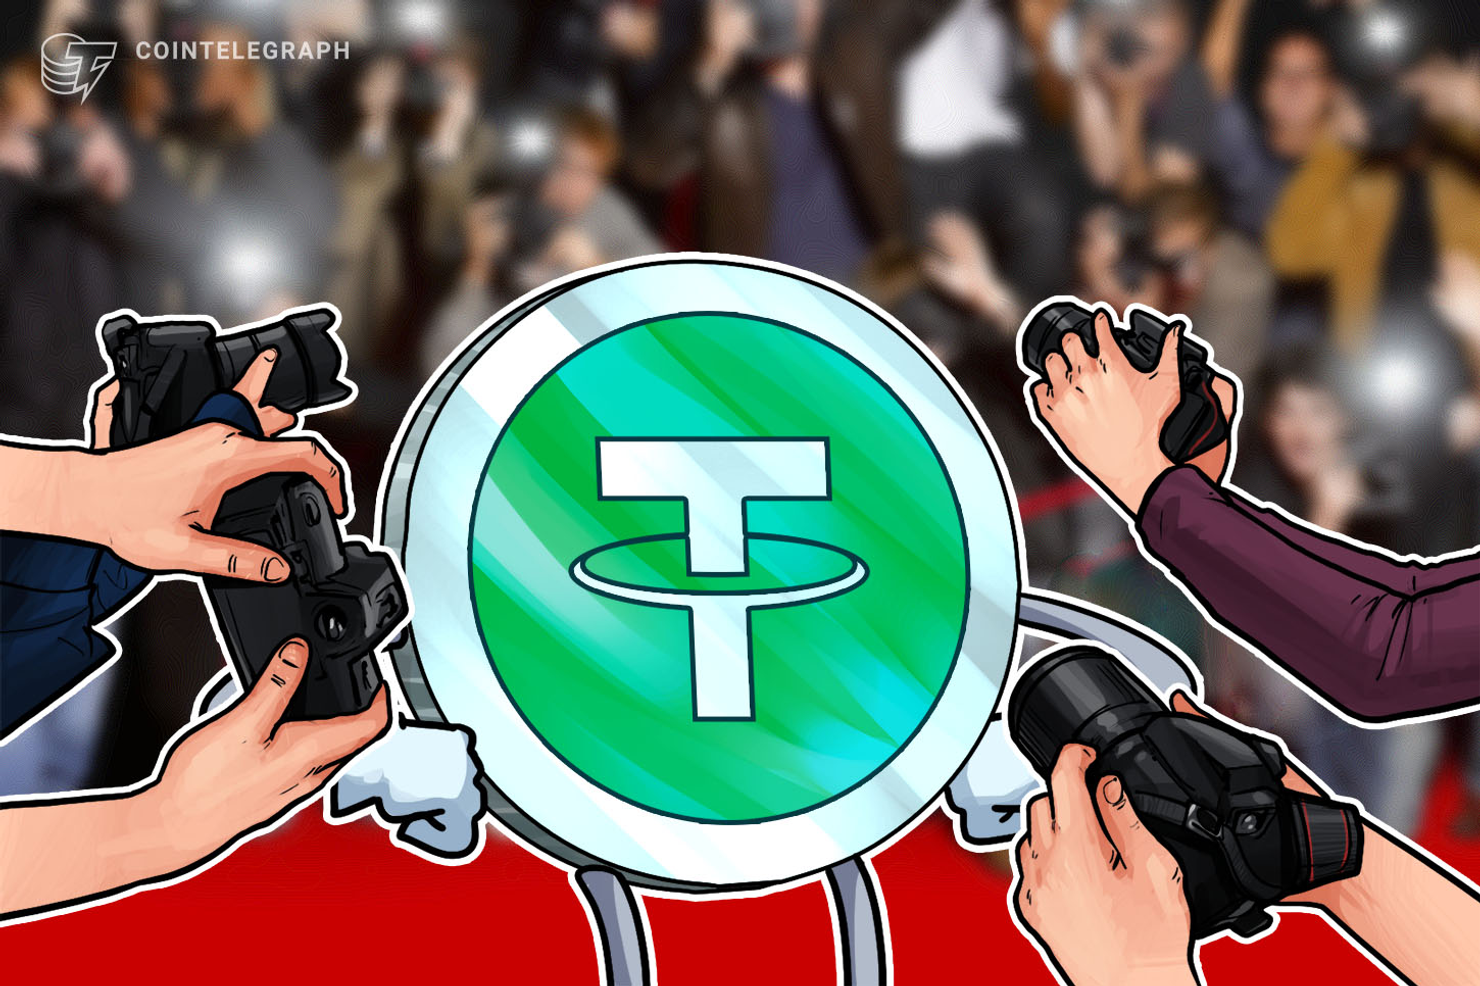 Tether Sponsors New Version of Bitcoin Tokenization Layer Omni